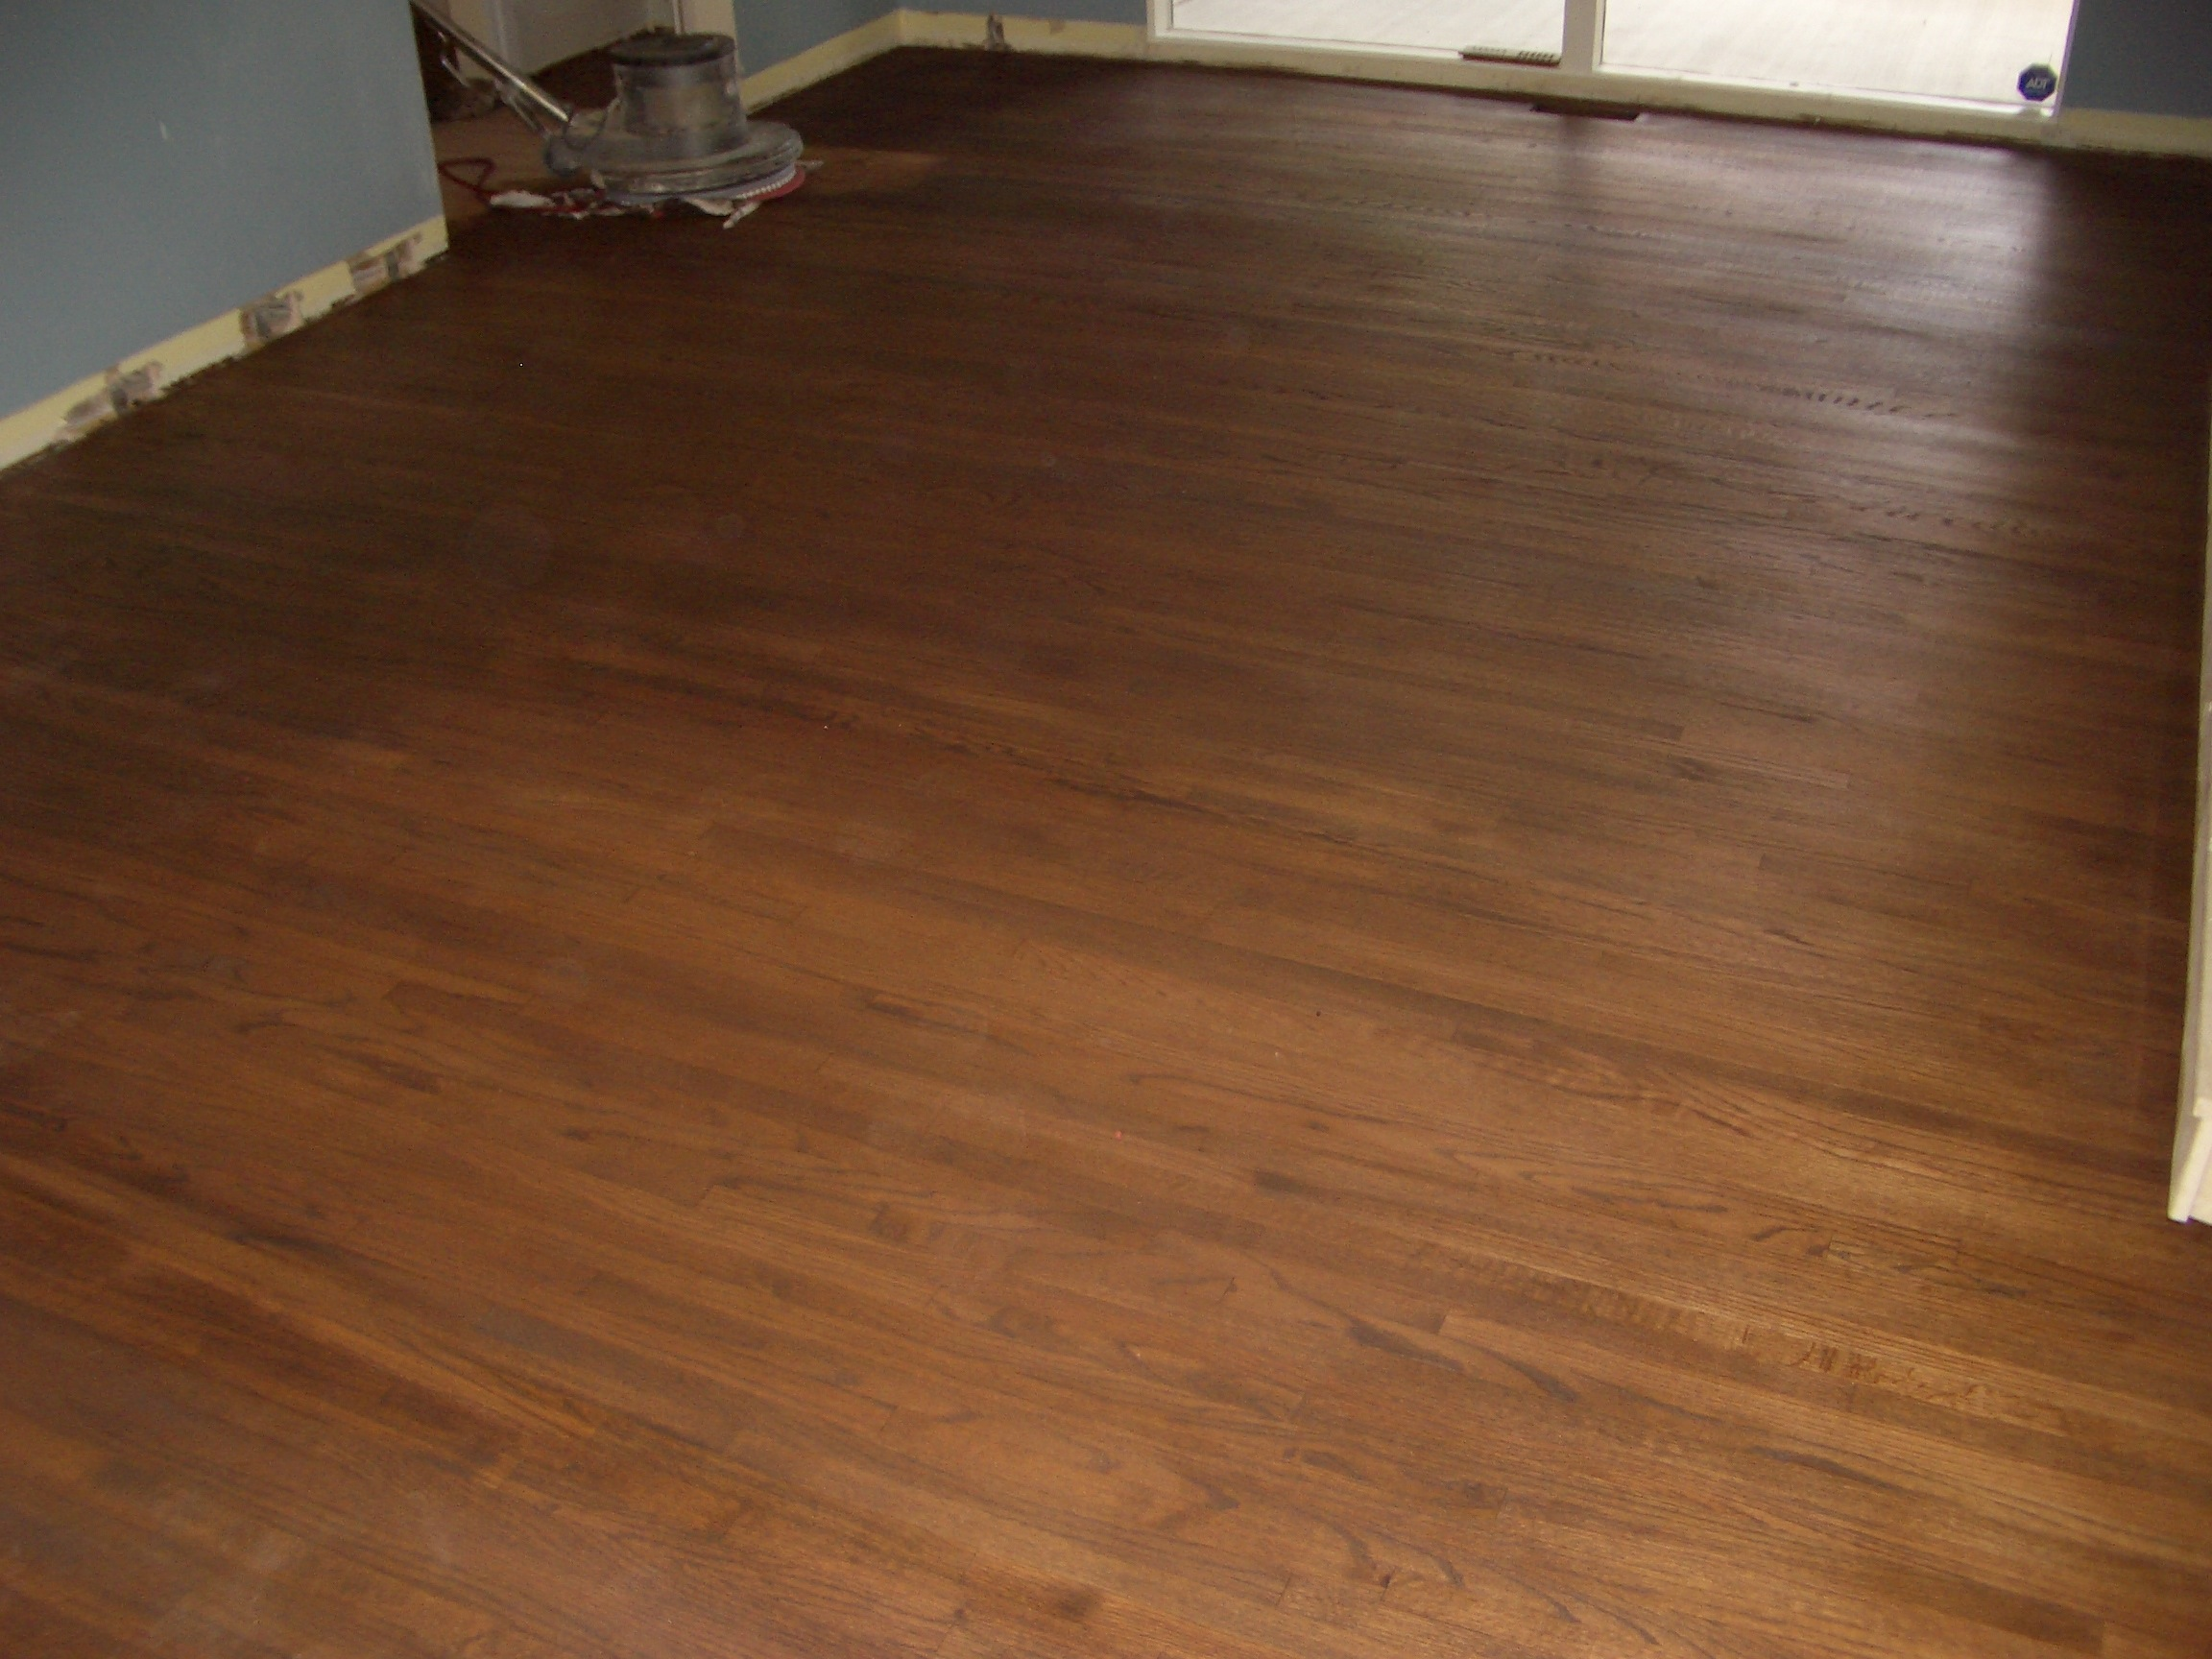 Oak hardwood floor refinishing